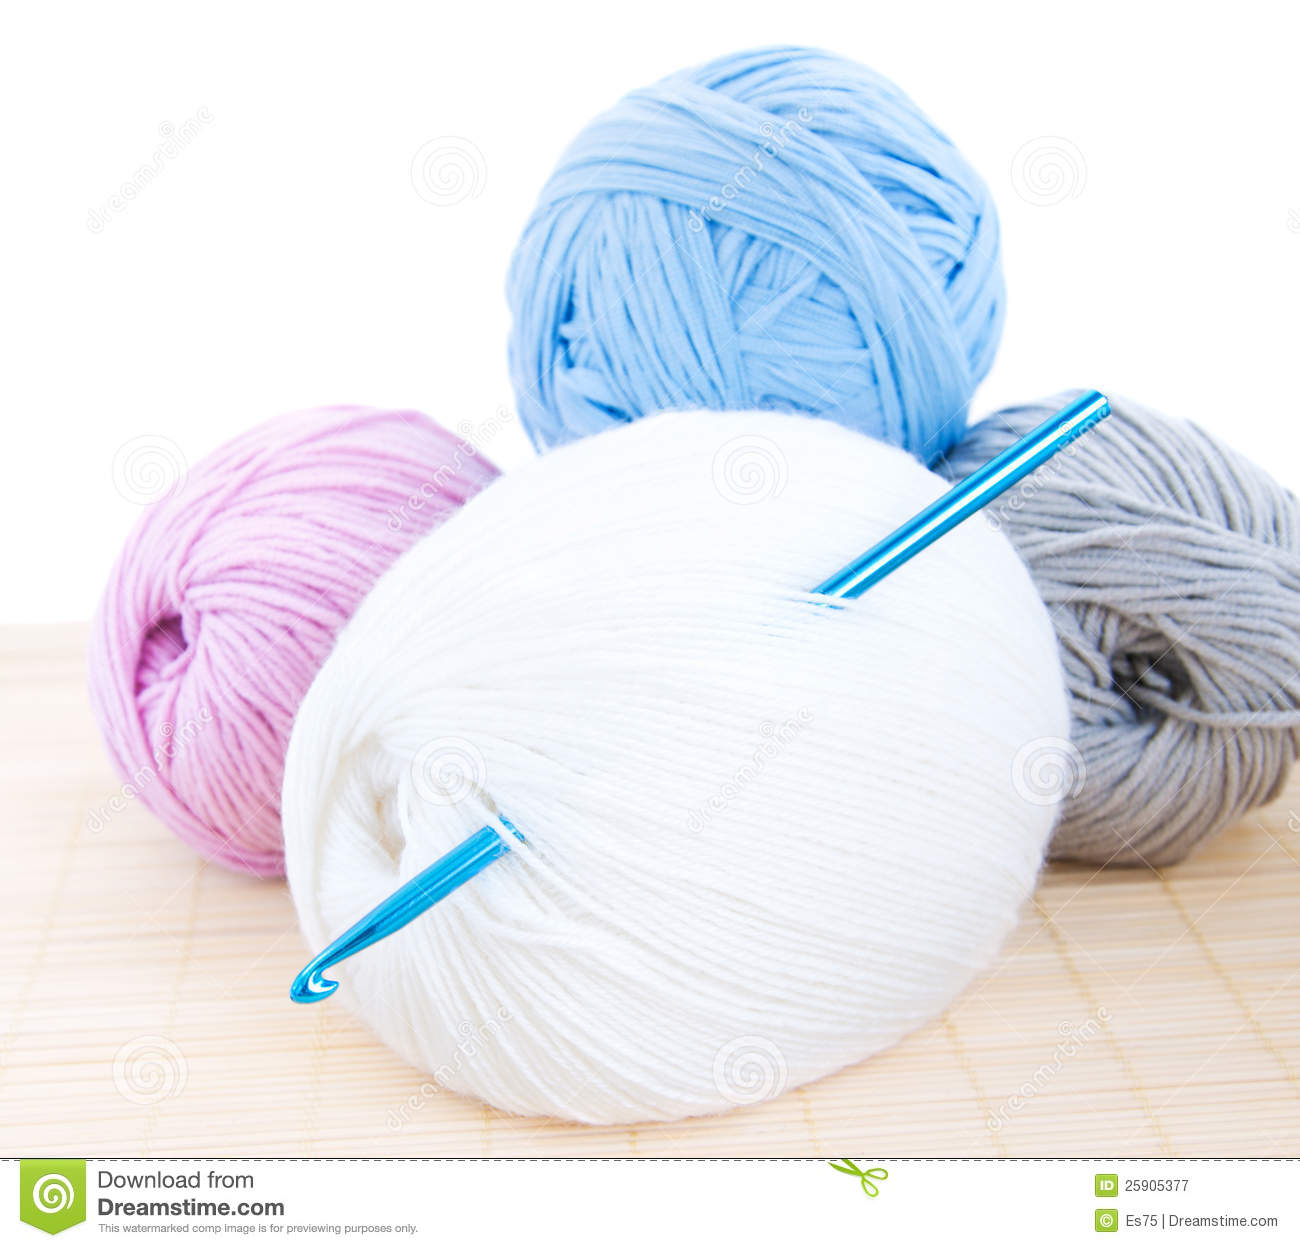 Crochet Hook And Yarn Royalty Free Stock Photography - Image: 25905377